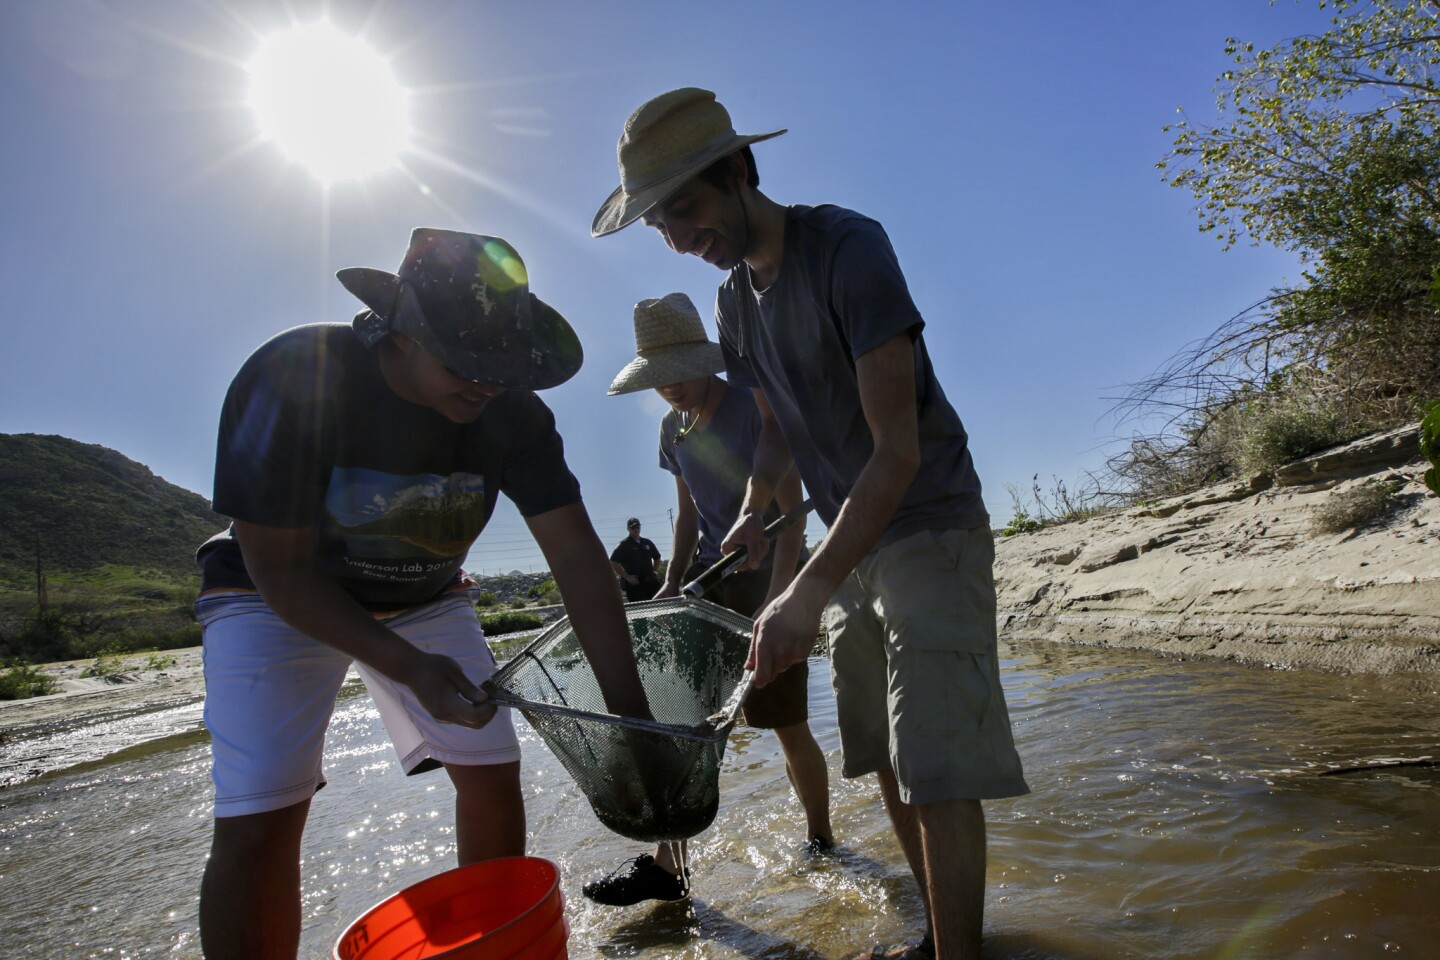 Brian Wang, 20, left, Perry Lau, 21, and Parsa Saffarinia, 24, all students from UC Riverside, catch and rescue threatened Santa Ana sucker fish from the Santa Ana River after a treatment plant halted flows into a stretch of the waterway in Colton.